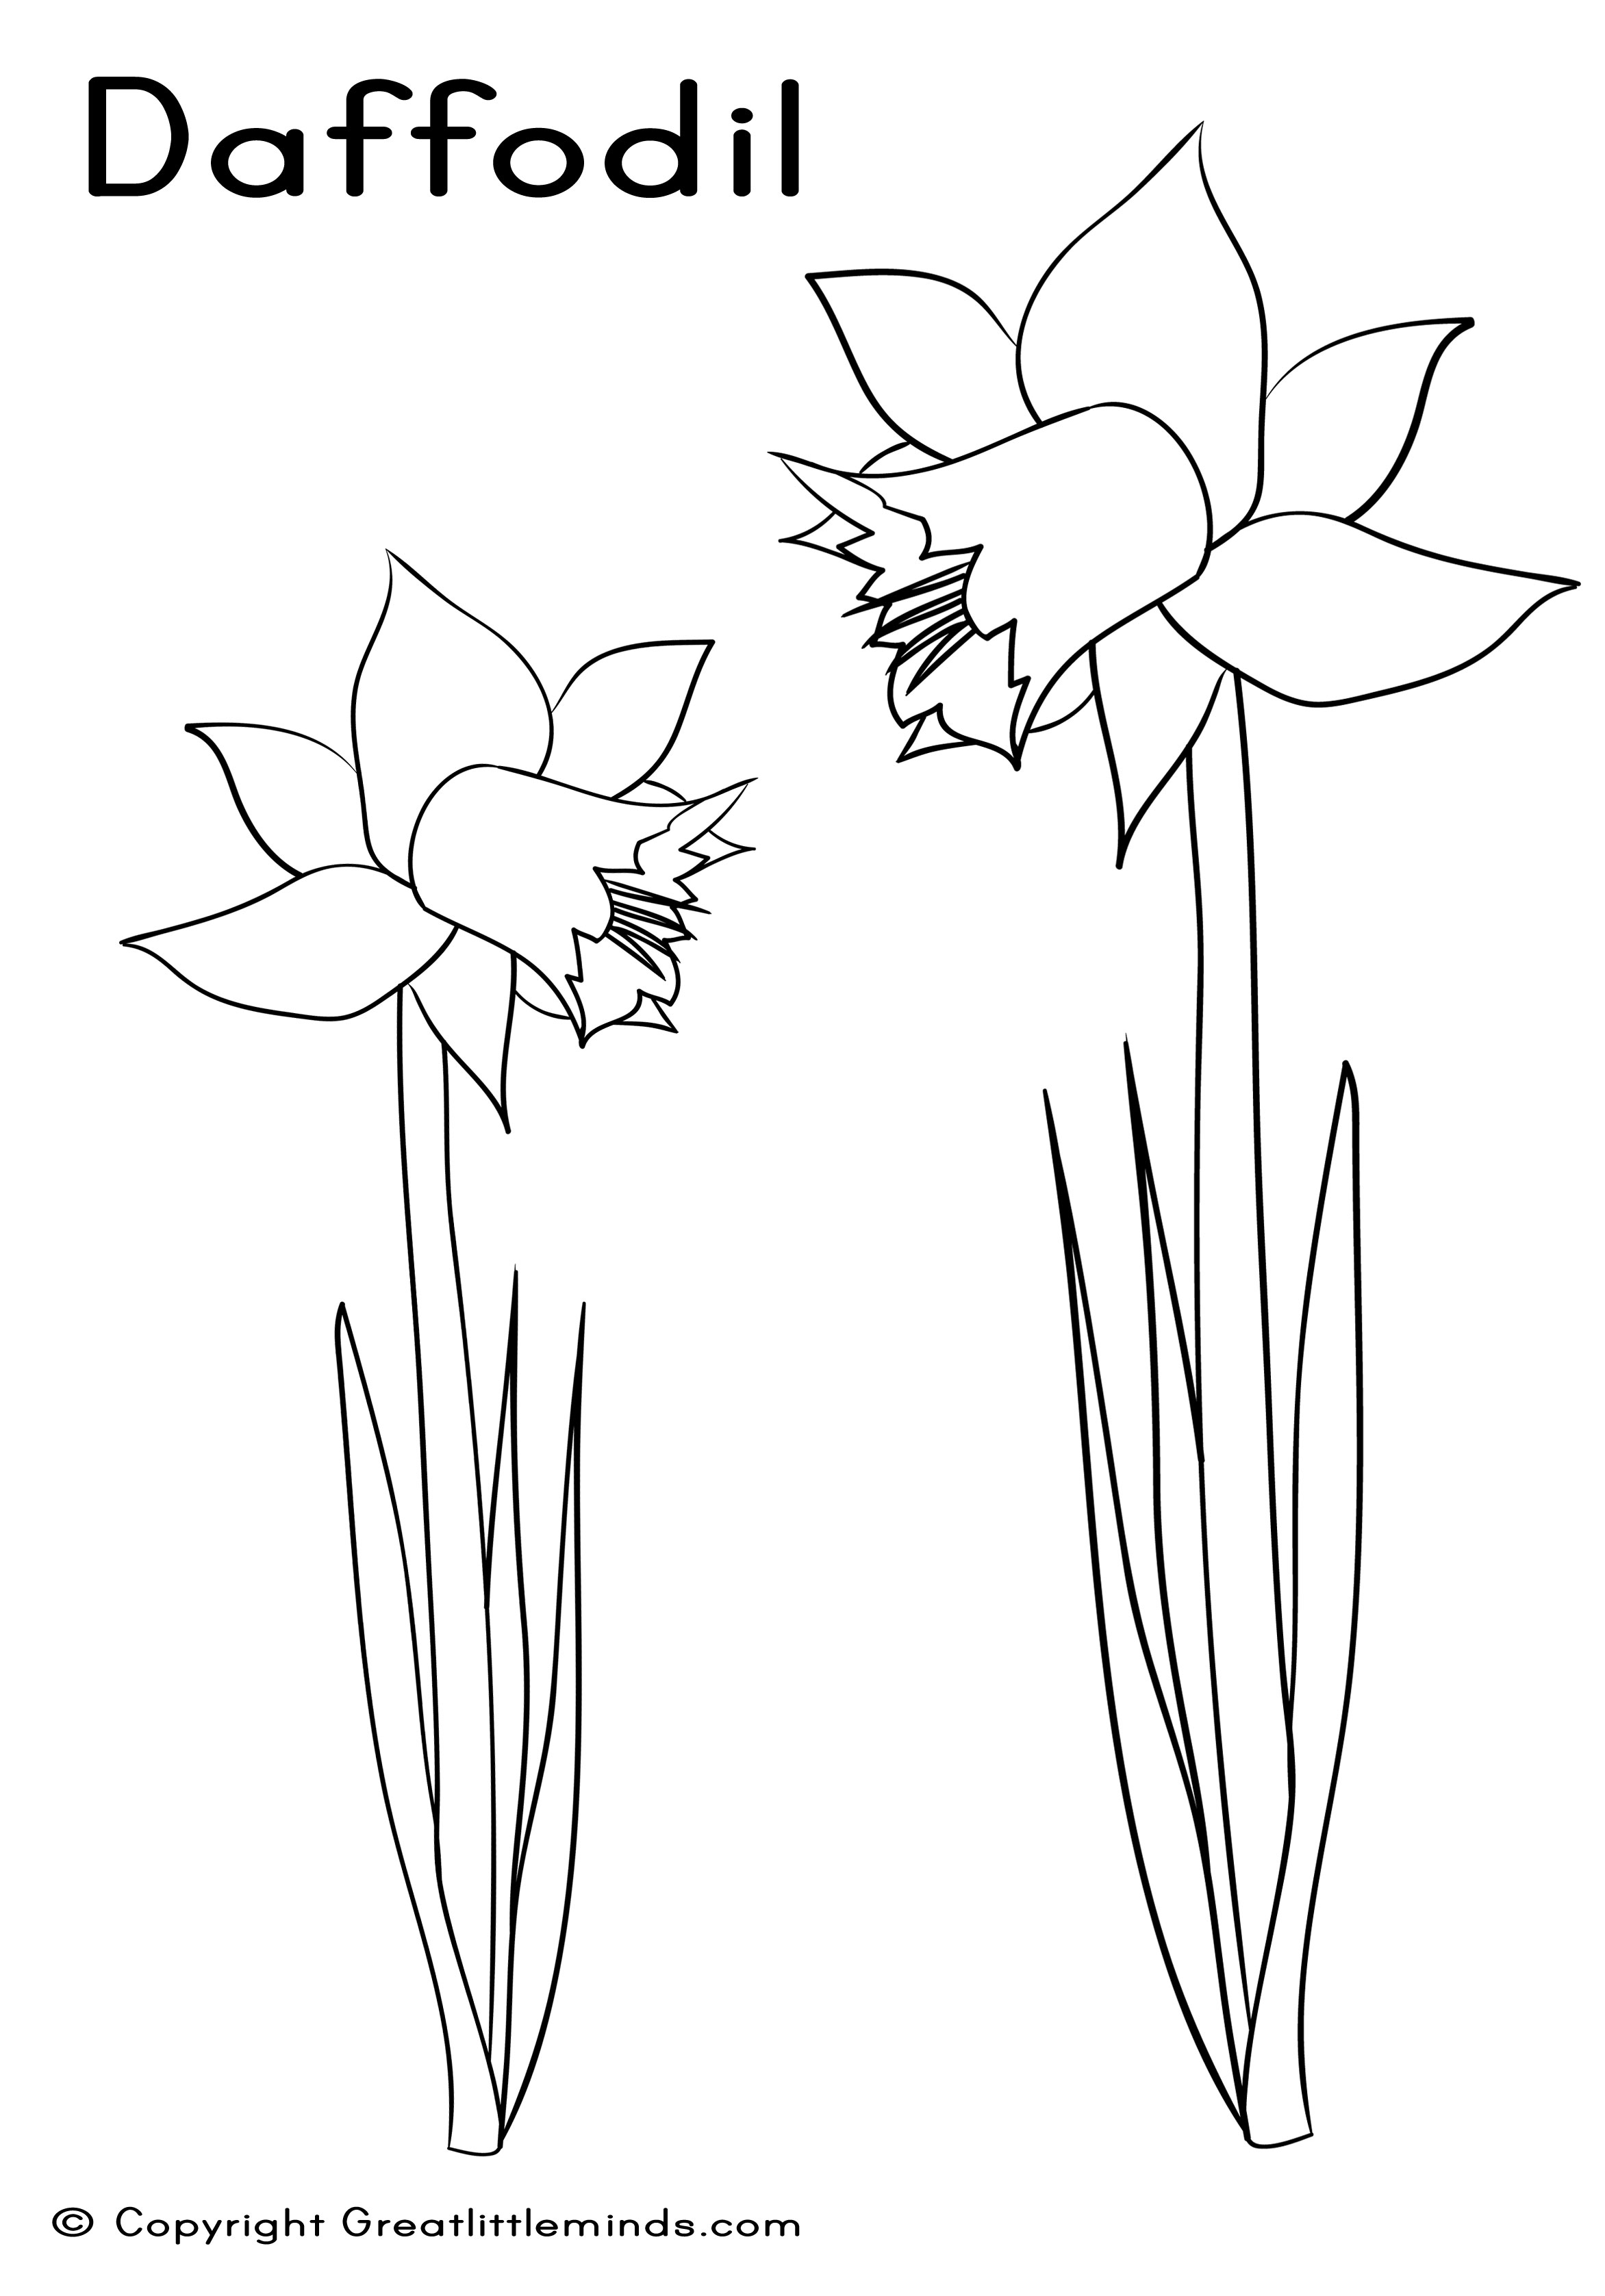 Daffodil Clipart Black And White